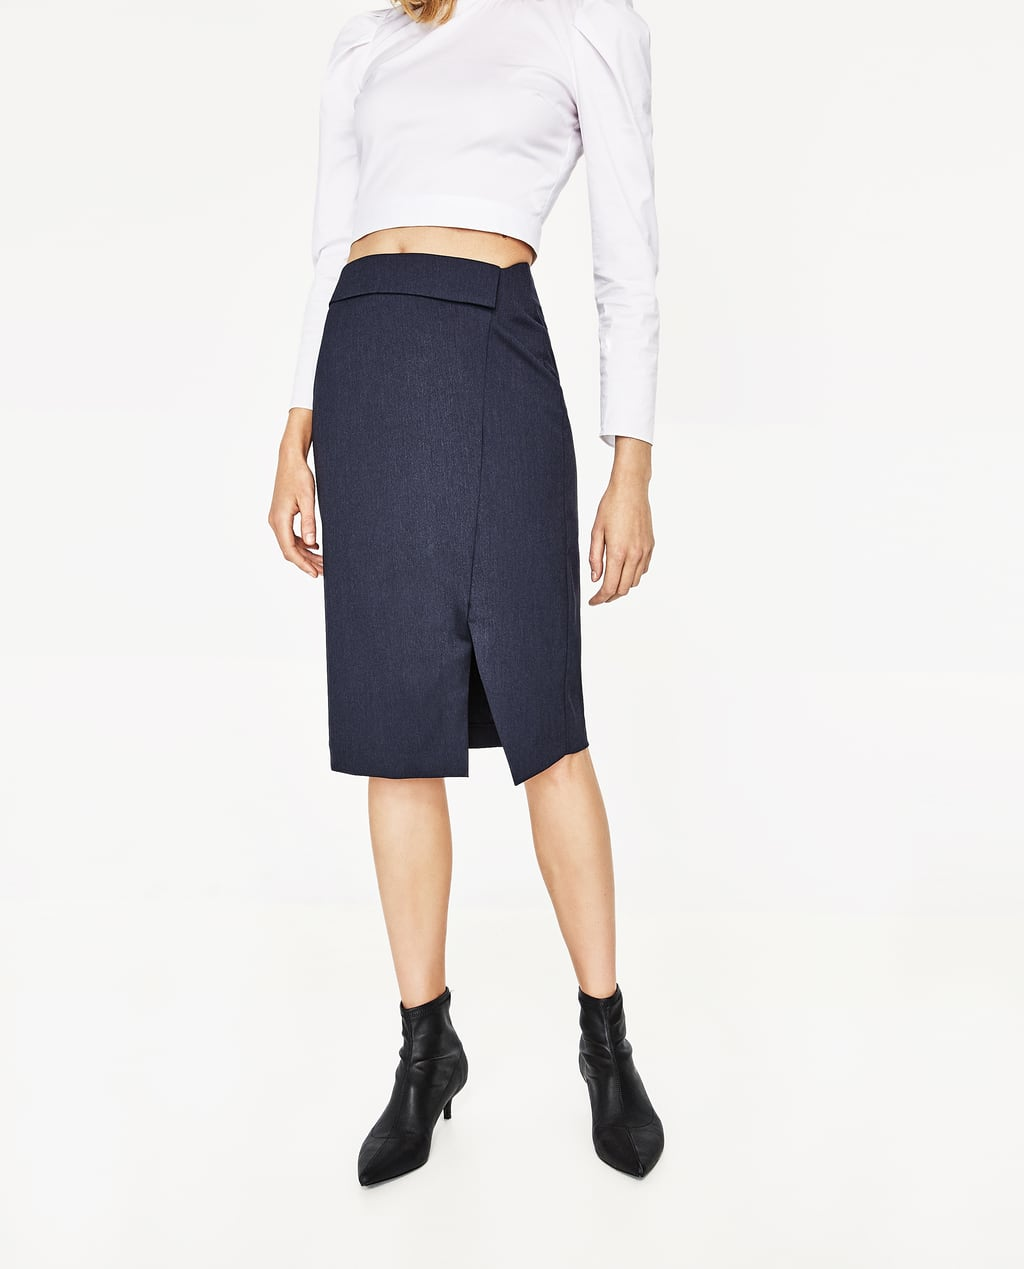 PENCIL SKIRT WITH SLIT - View All-SKIRTS-WOMAN | ZARA United States